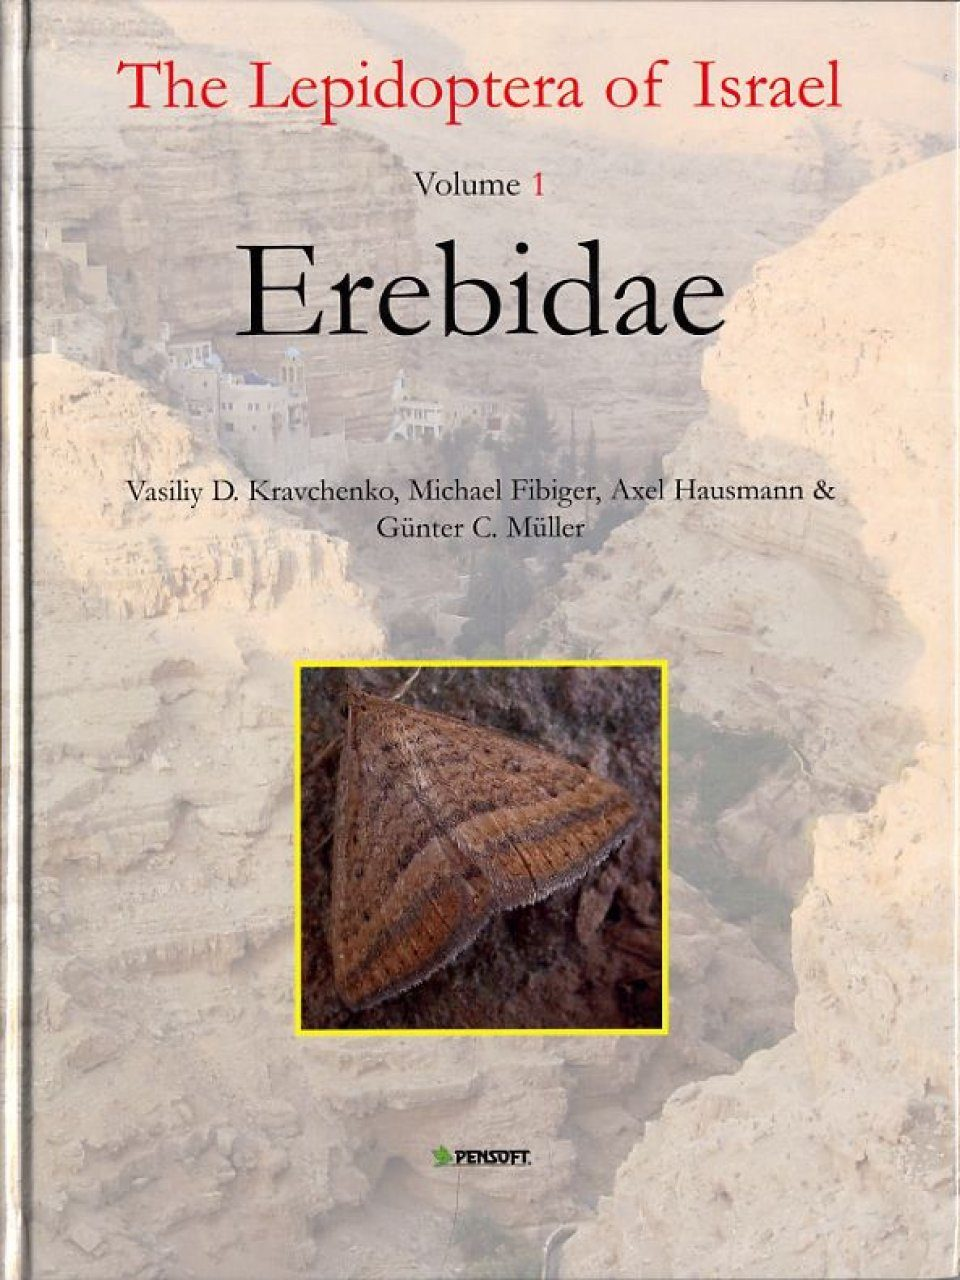 The Lepidoptera of Israel, Volume 1: Erebidae